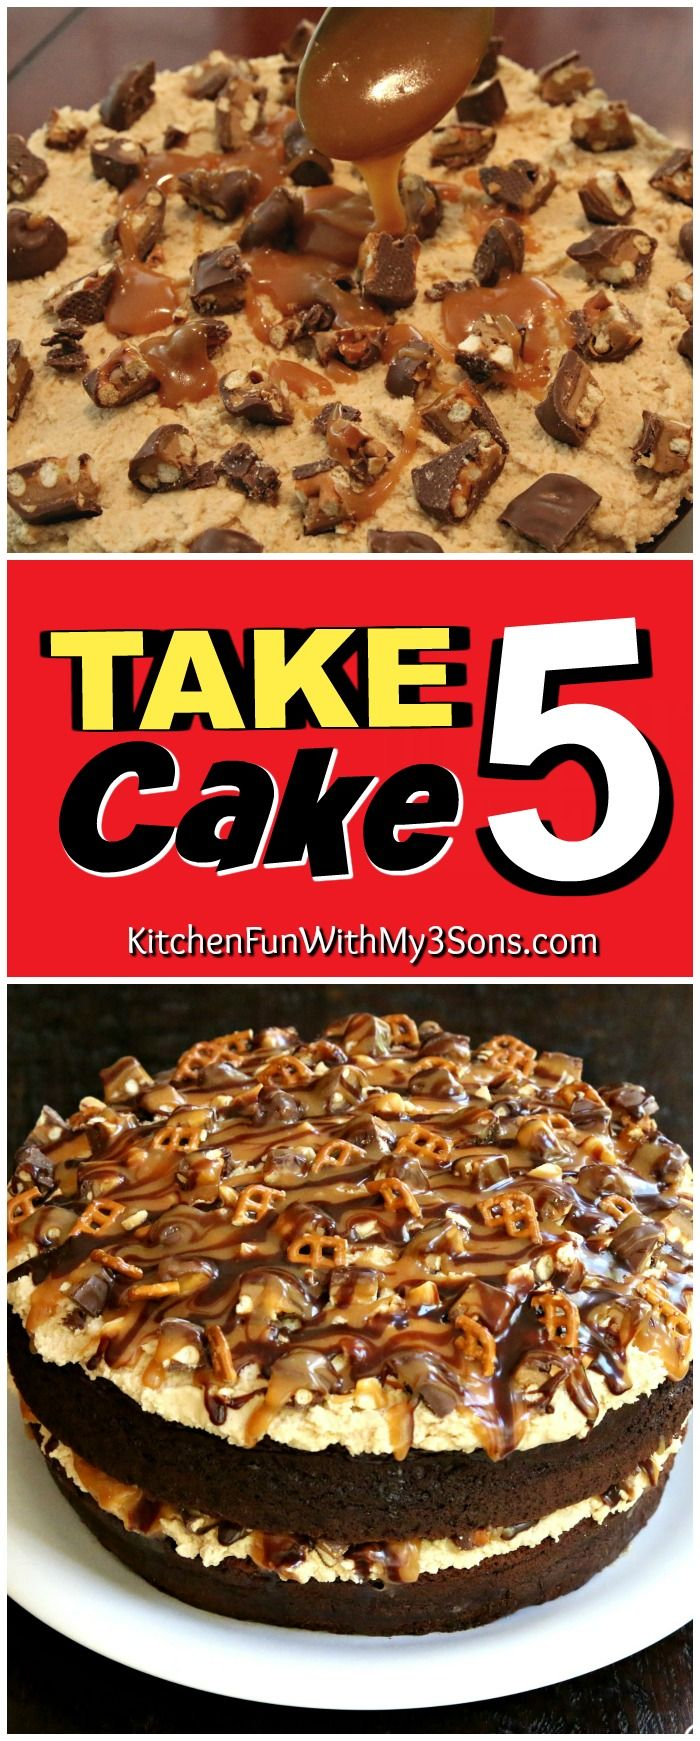 Take 5 Cake The Beloved Candy Bar Has Been Turned Into A Cake And It S Amazing Desserts Cake Recipes Best Cake Recipes